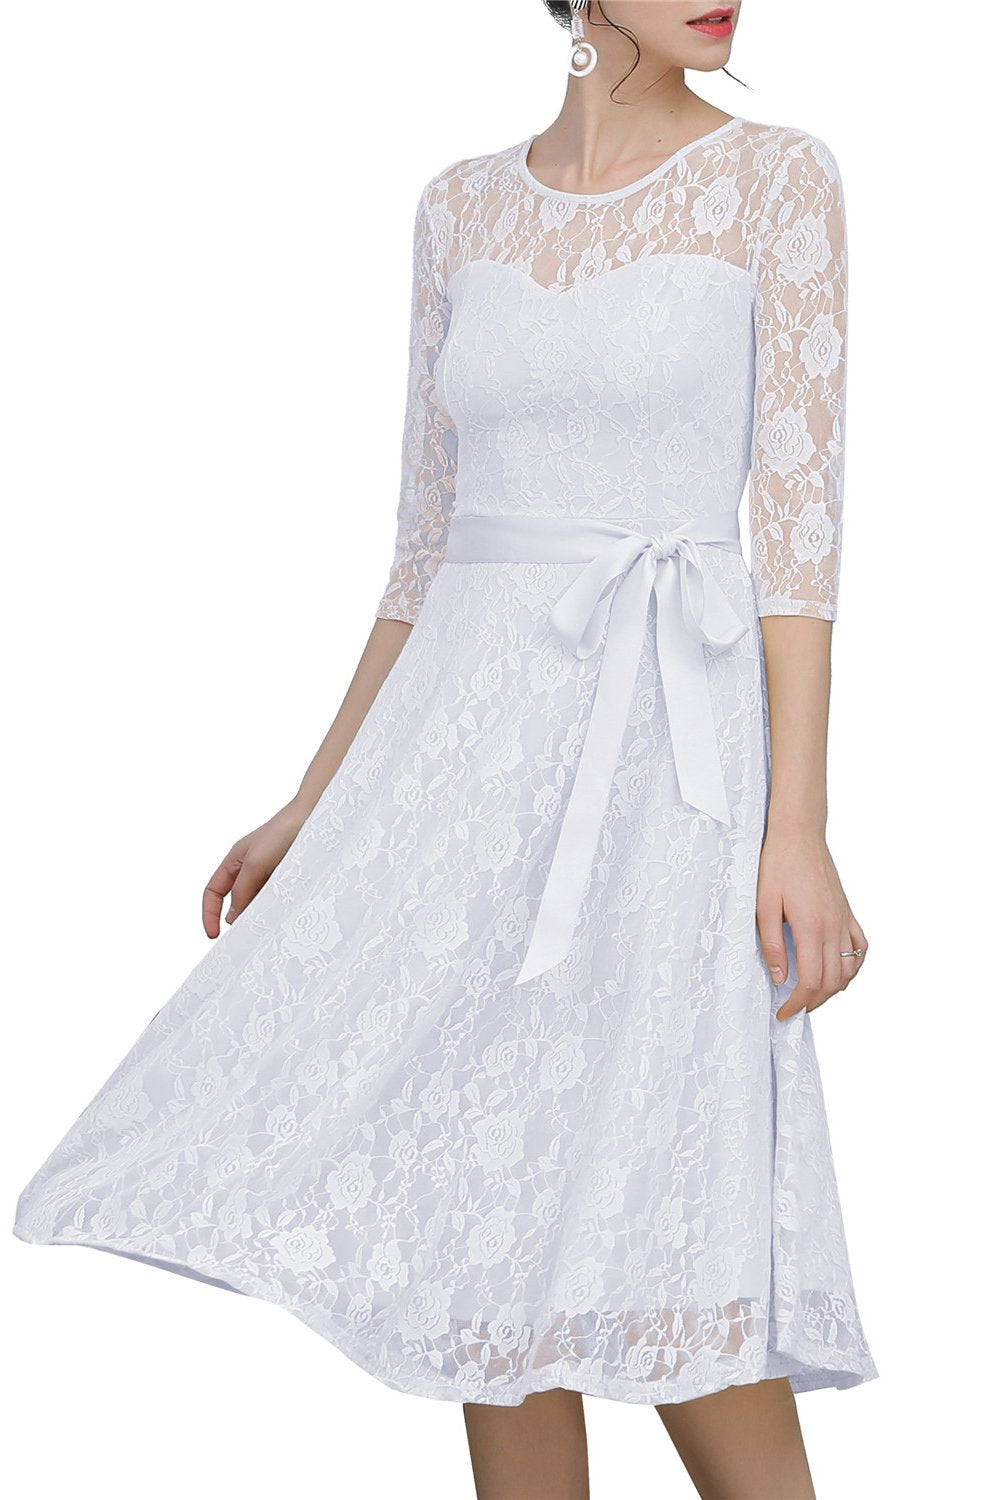 White Sash Lace Dress